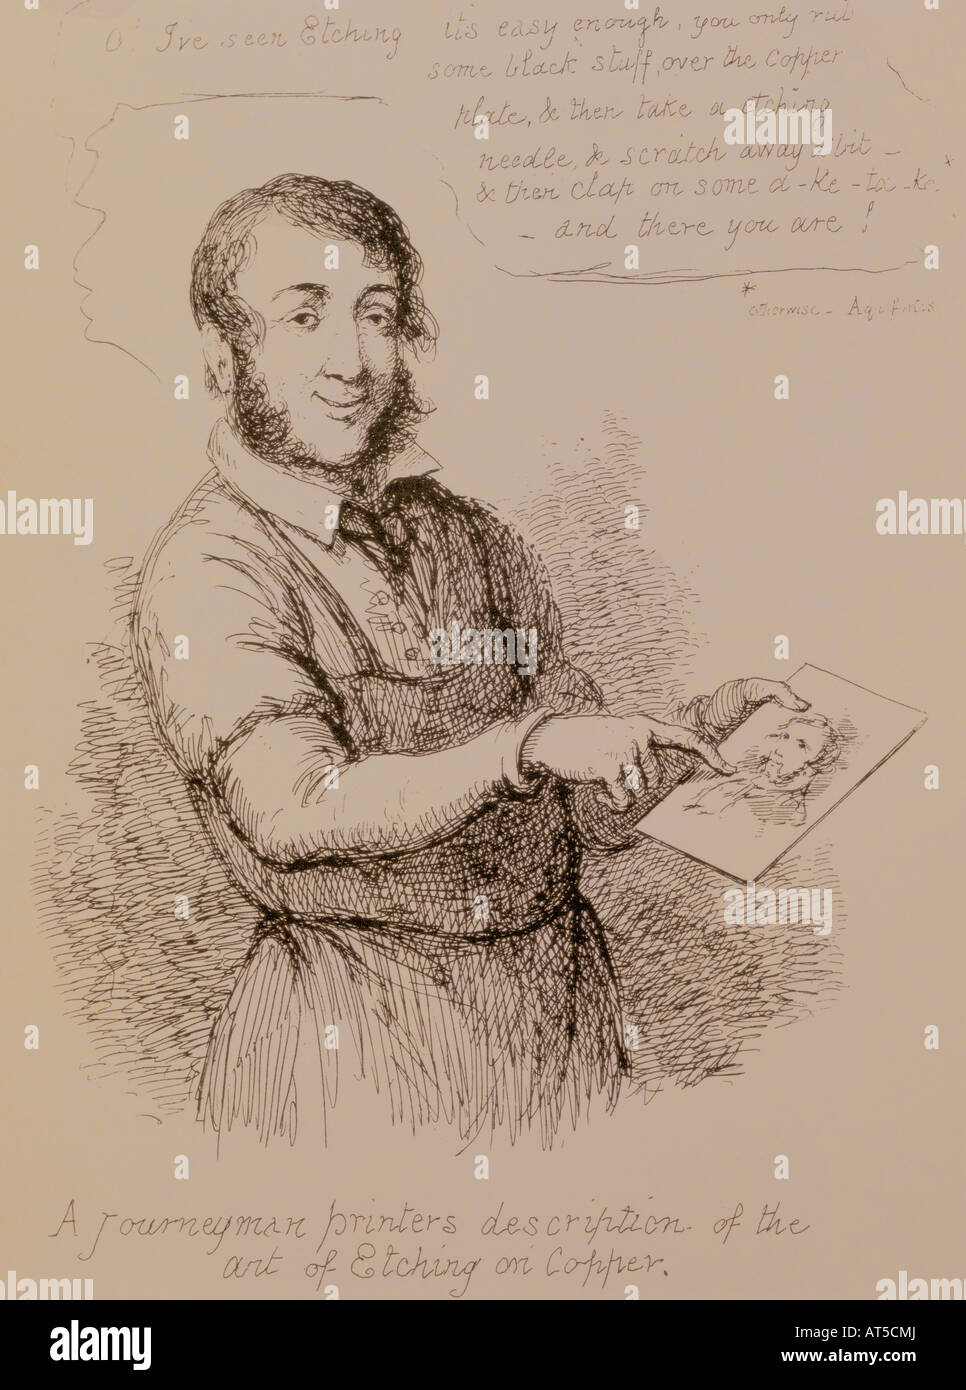 fine arts, Cruikshank, George (1792 - 1878), graphic, etching, self-portrait with copper plate, London, 1859, private - Stock Image